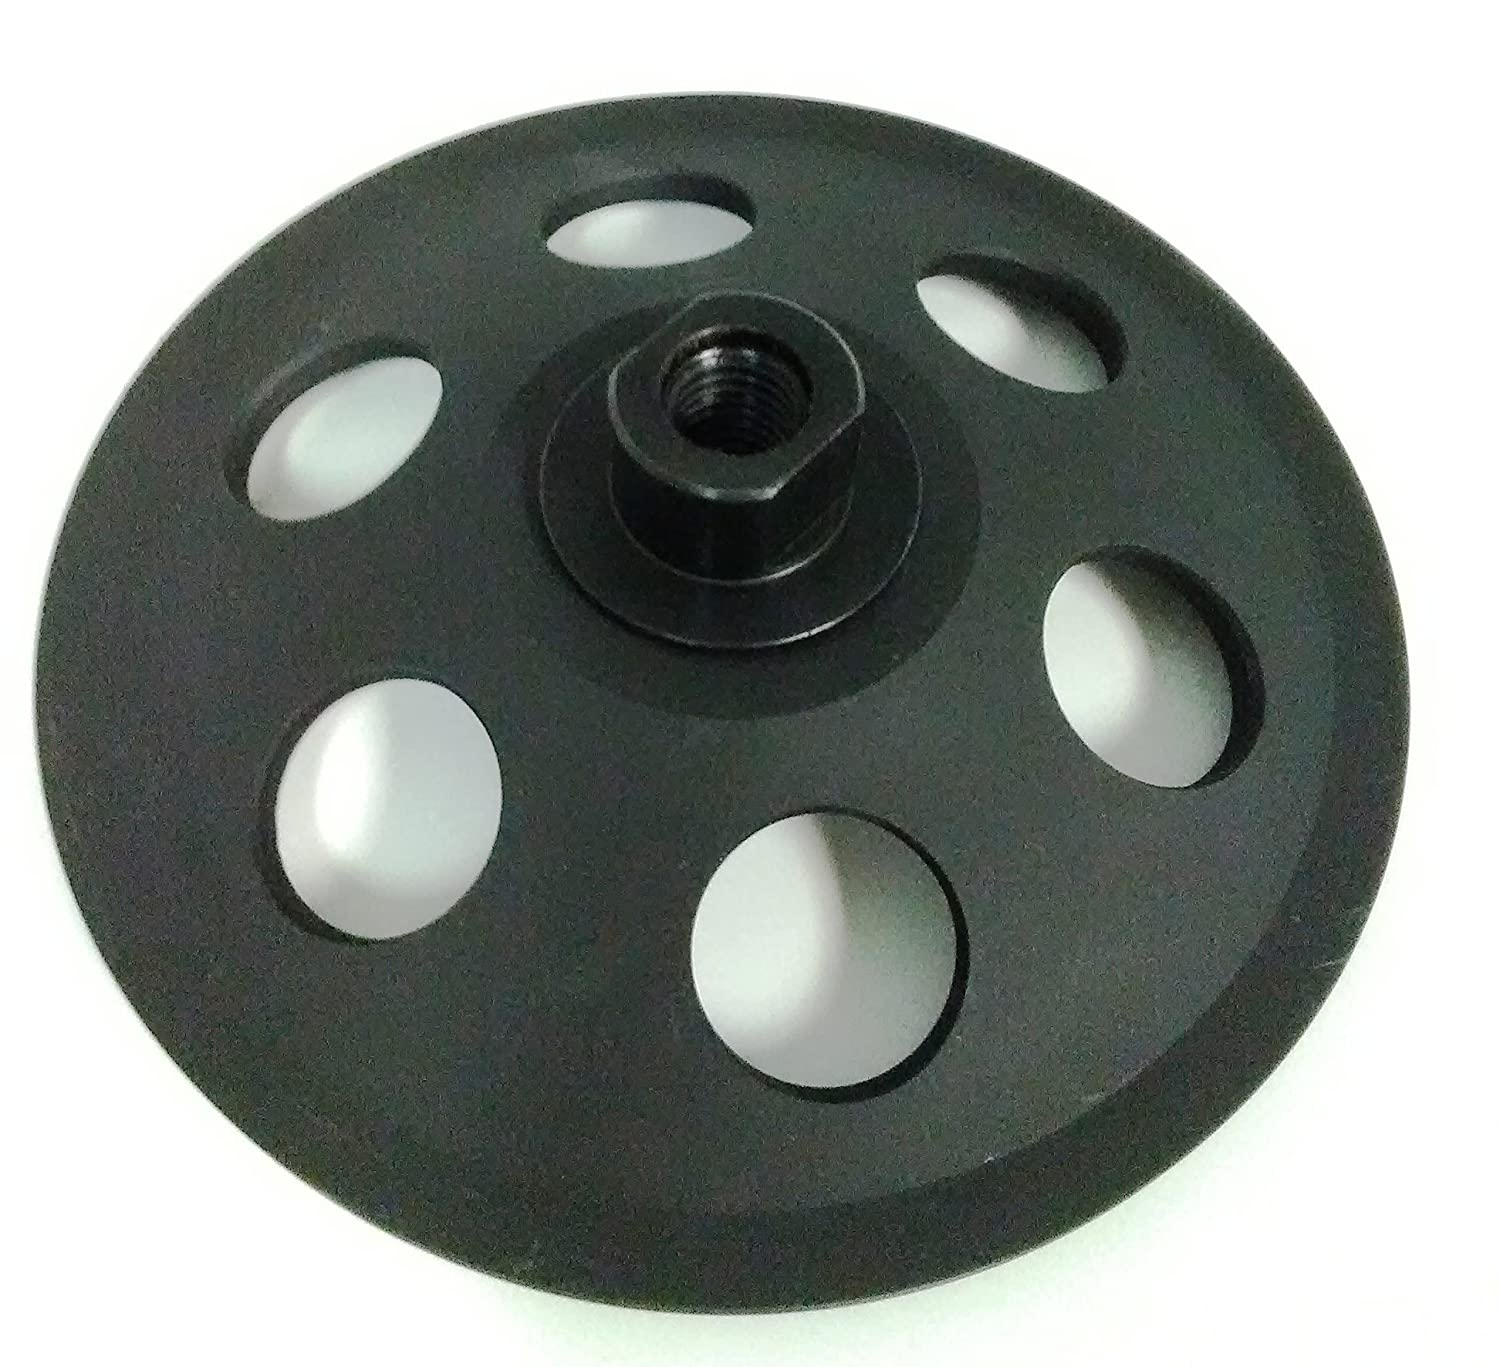 Paint and Mastic 8 Segments Glue 5-Inch PCD Cup Wheel Grinder 5//8-11 Threaded Poly Crystaline Cup for Removing Epoxy